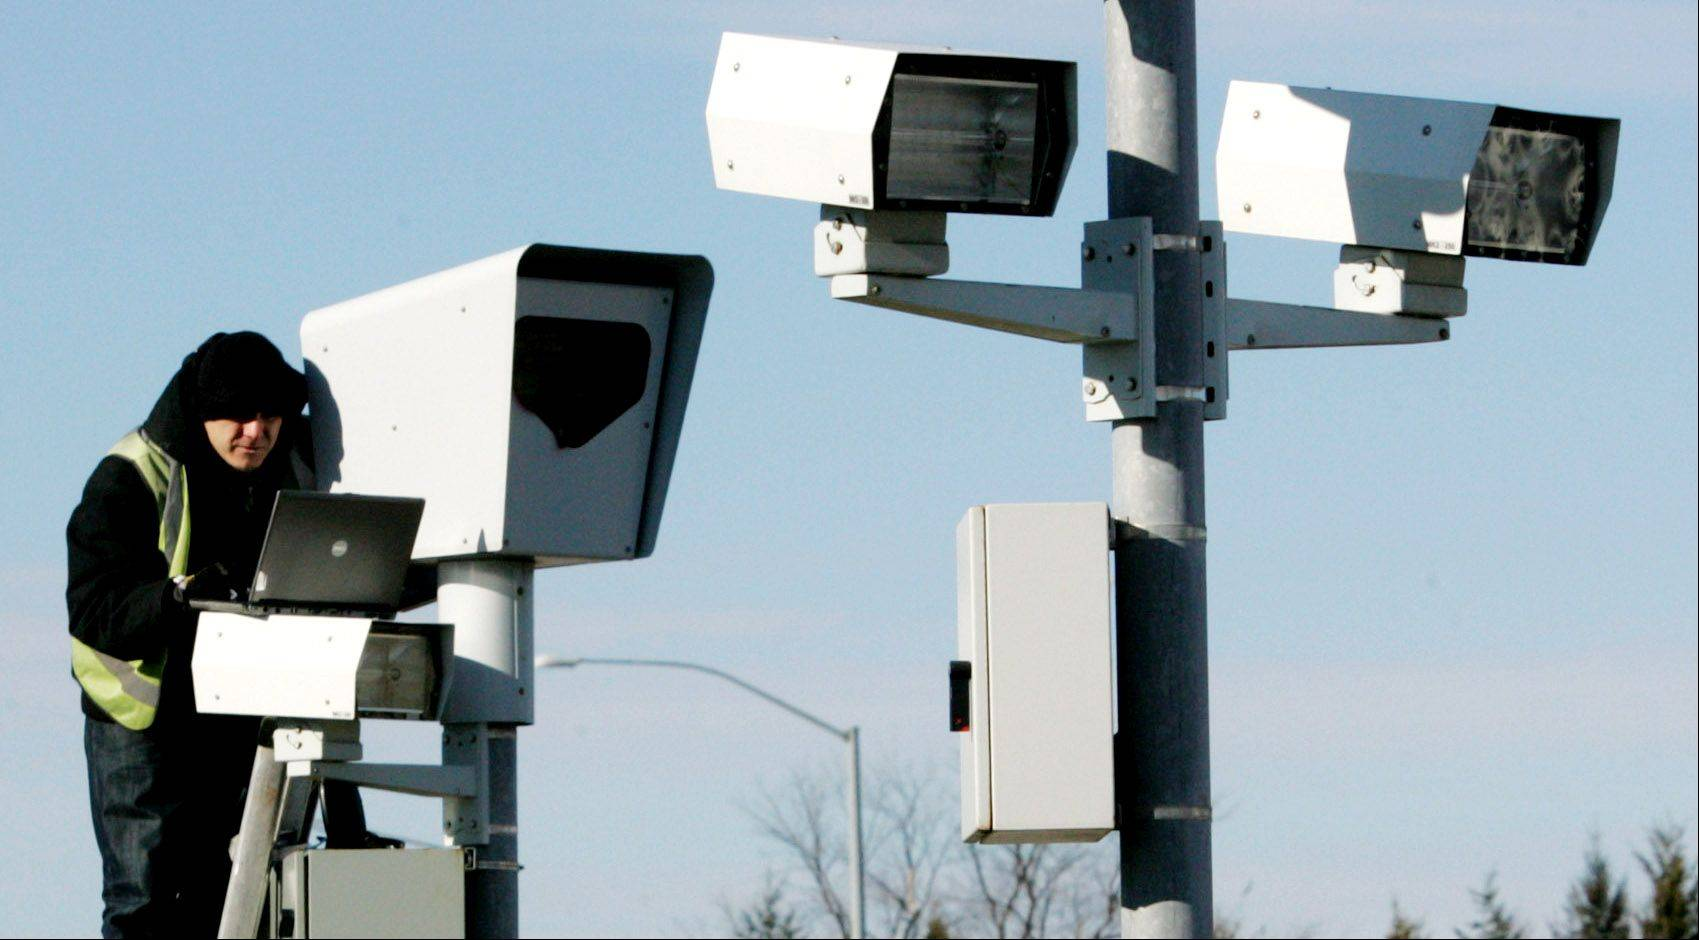 Gurnee wants deadbeats to pay $1.5 milllion in red-light camera violation fines